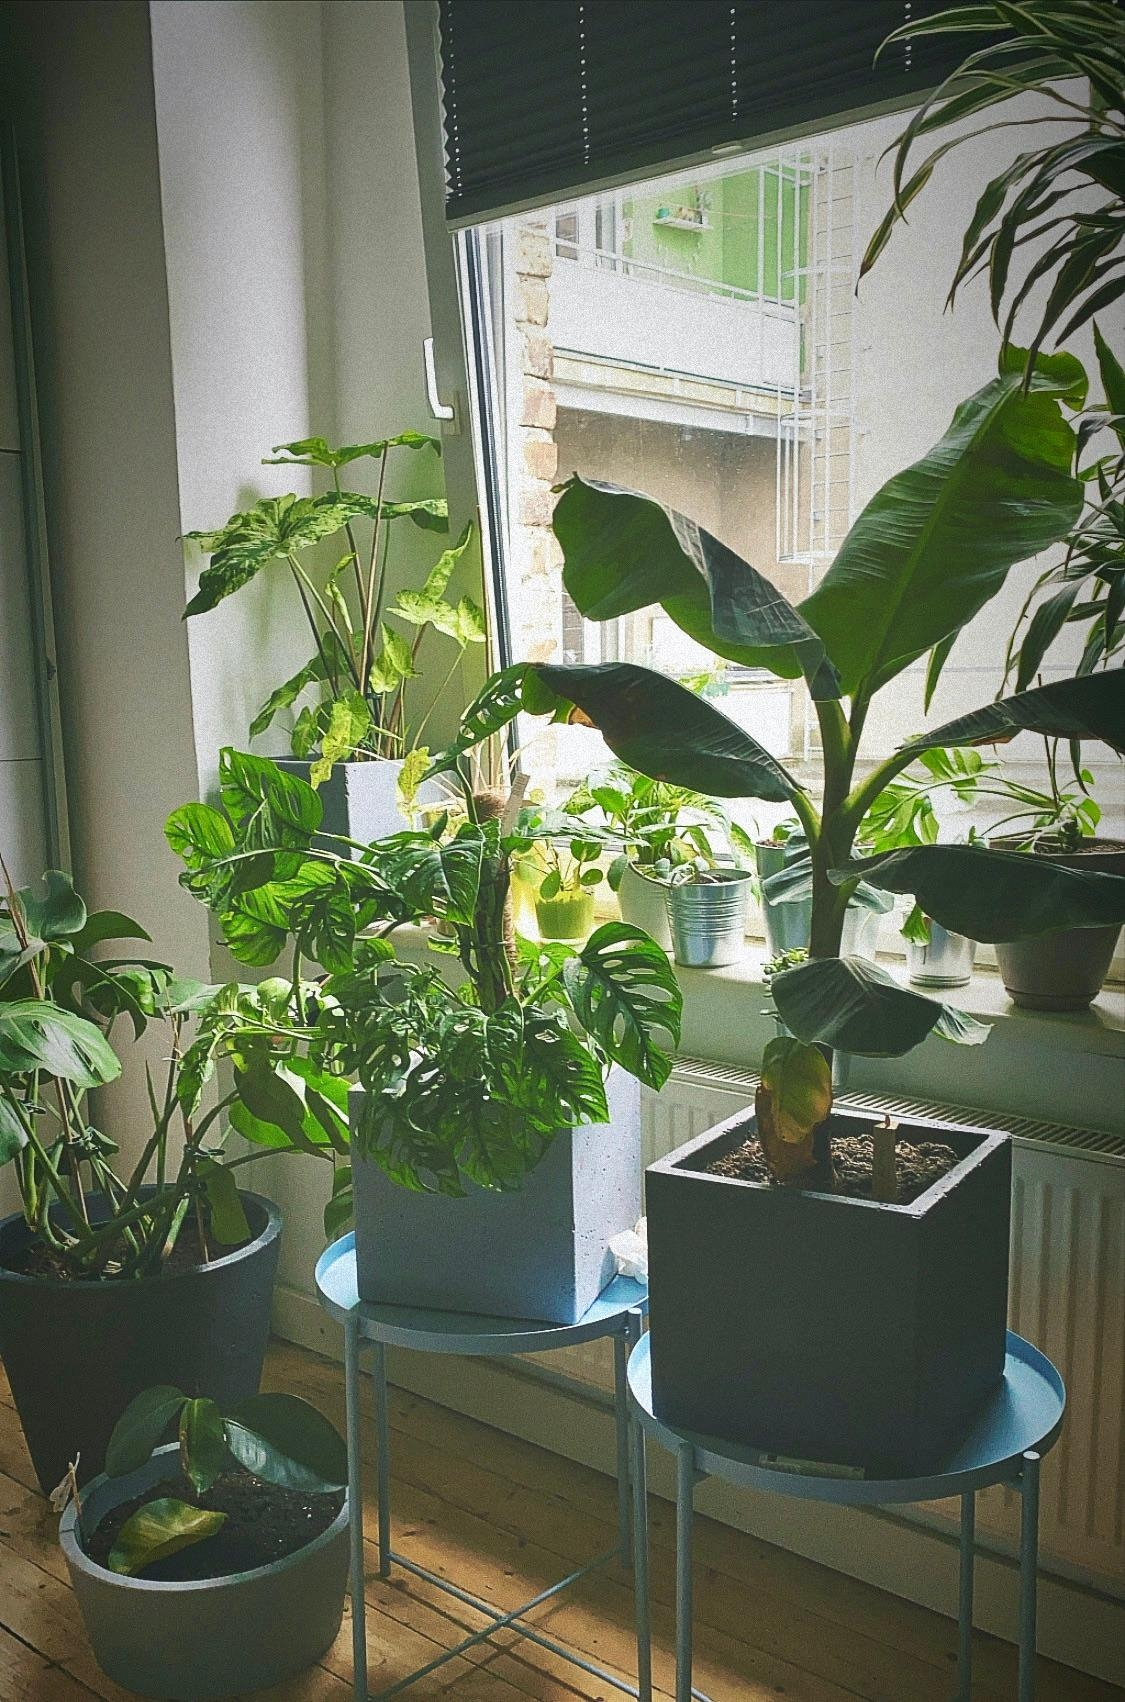 #urbanjungle #myurbanjungle #urbanjungleblogger #pflanzenliebe #zimmerpflanzen